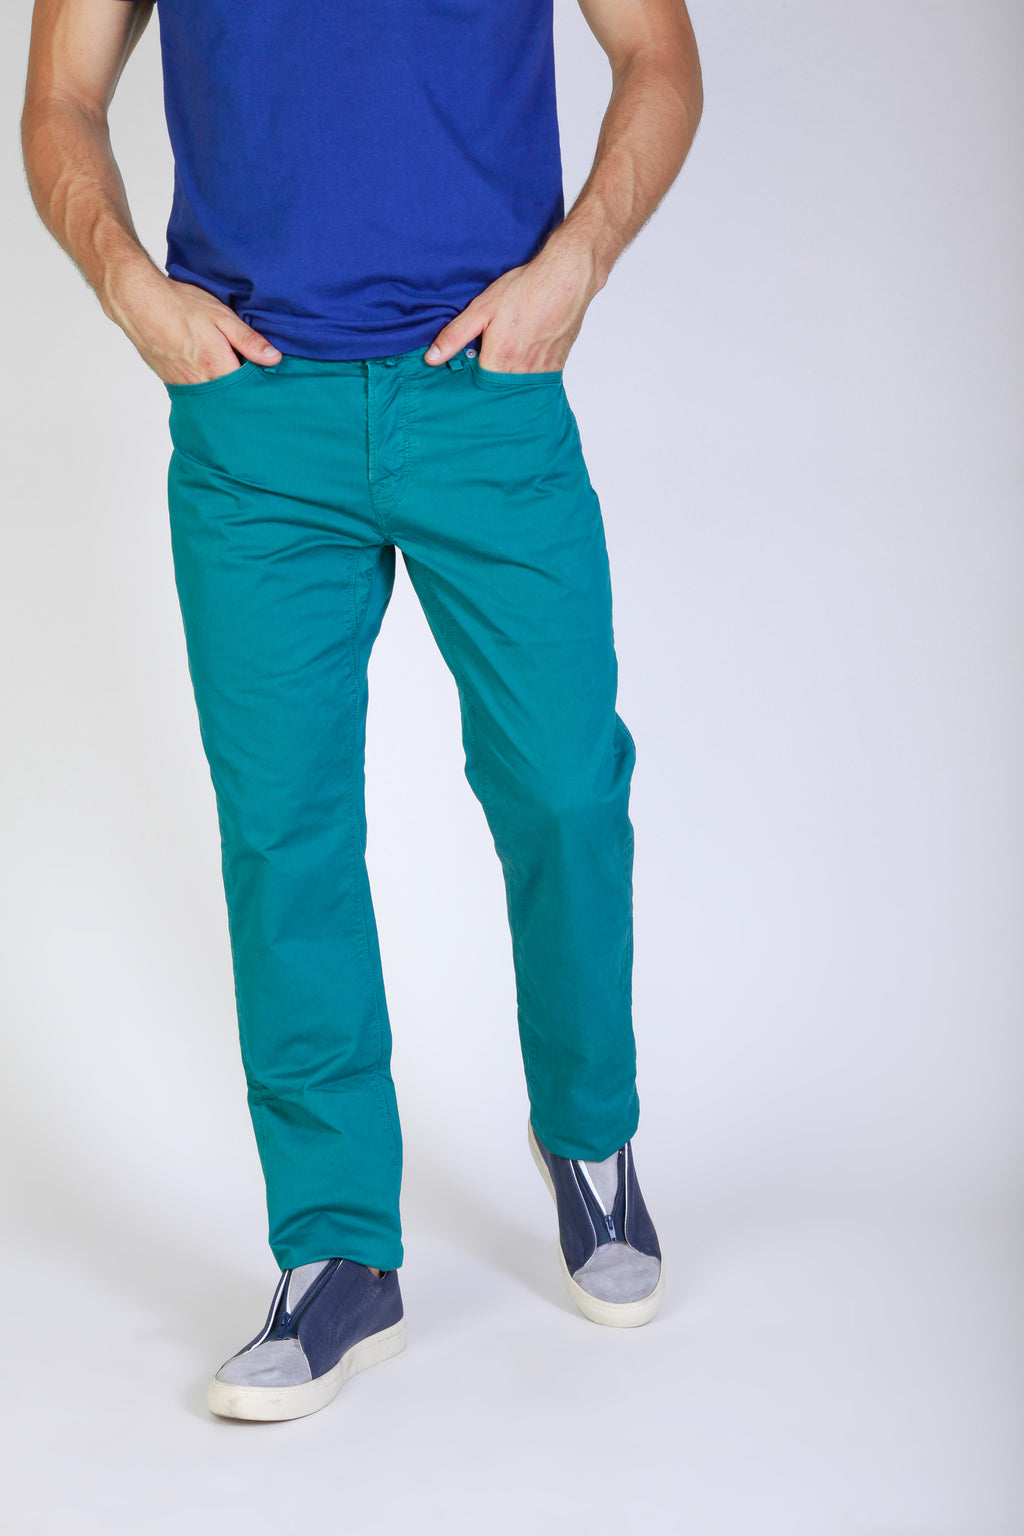 Jaggy J1889T812-Q1 Trousers